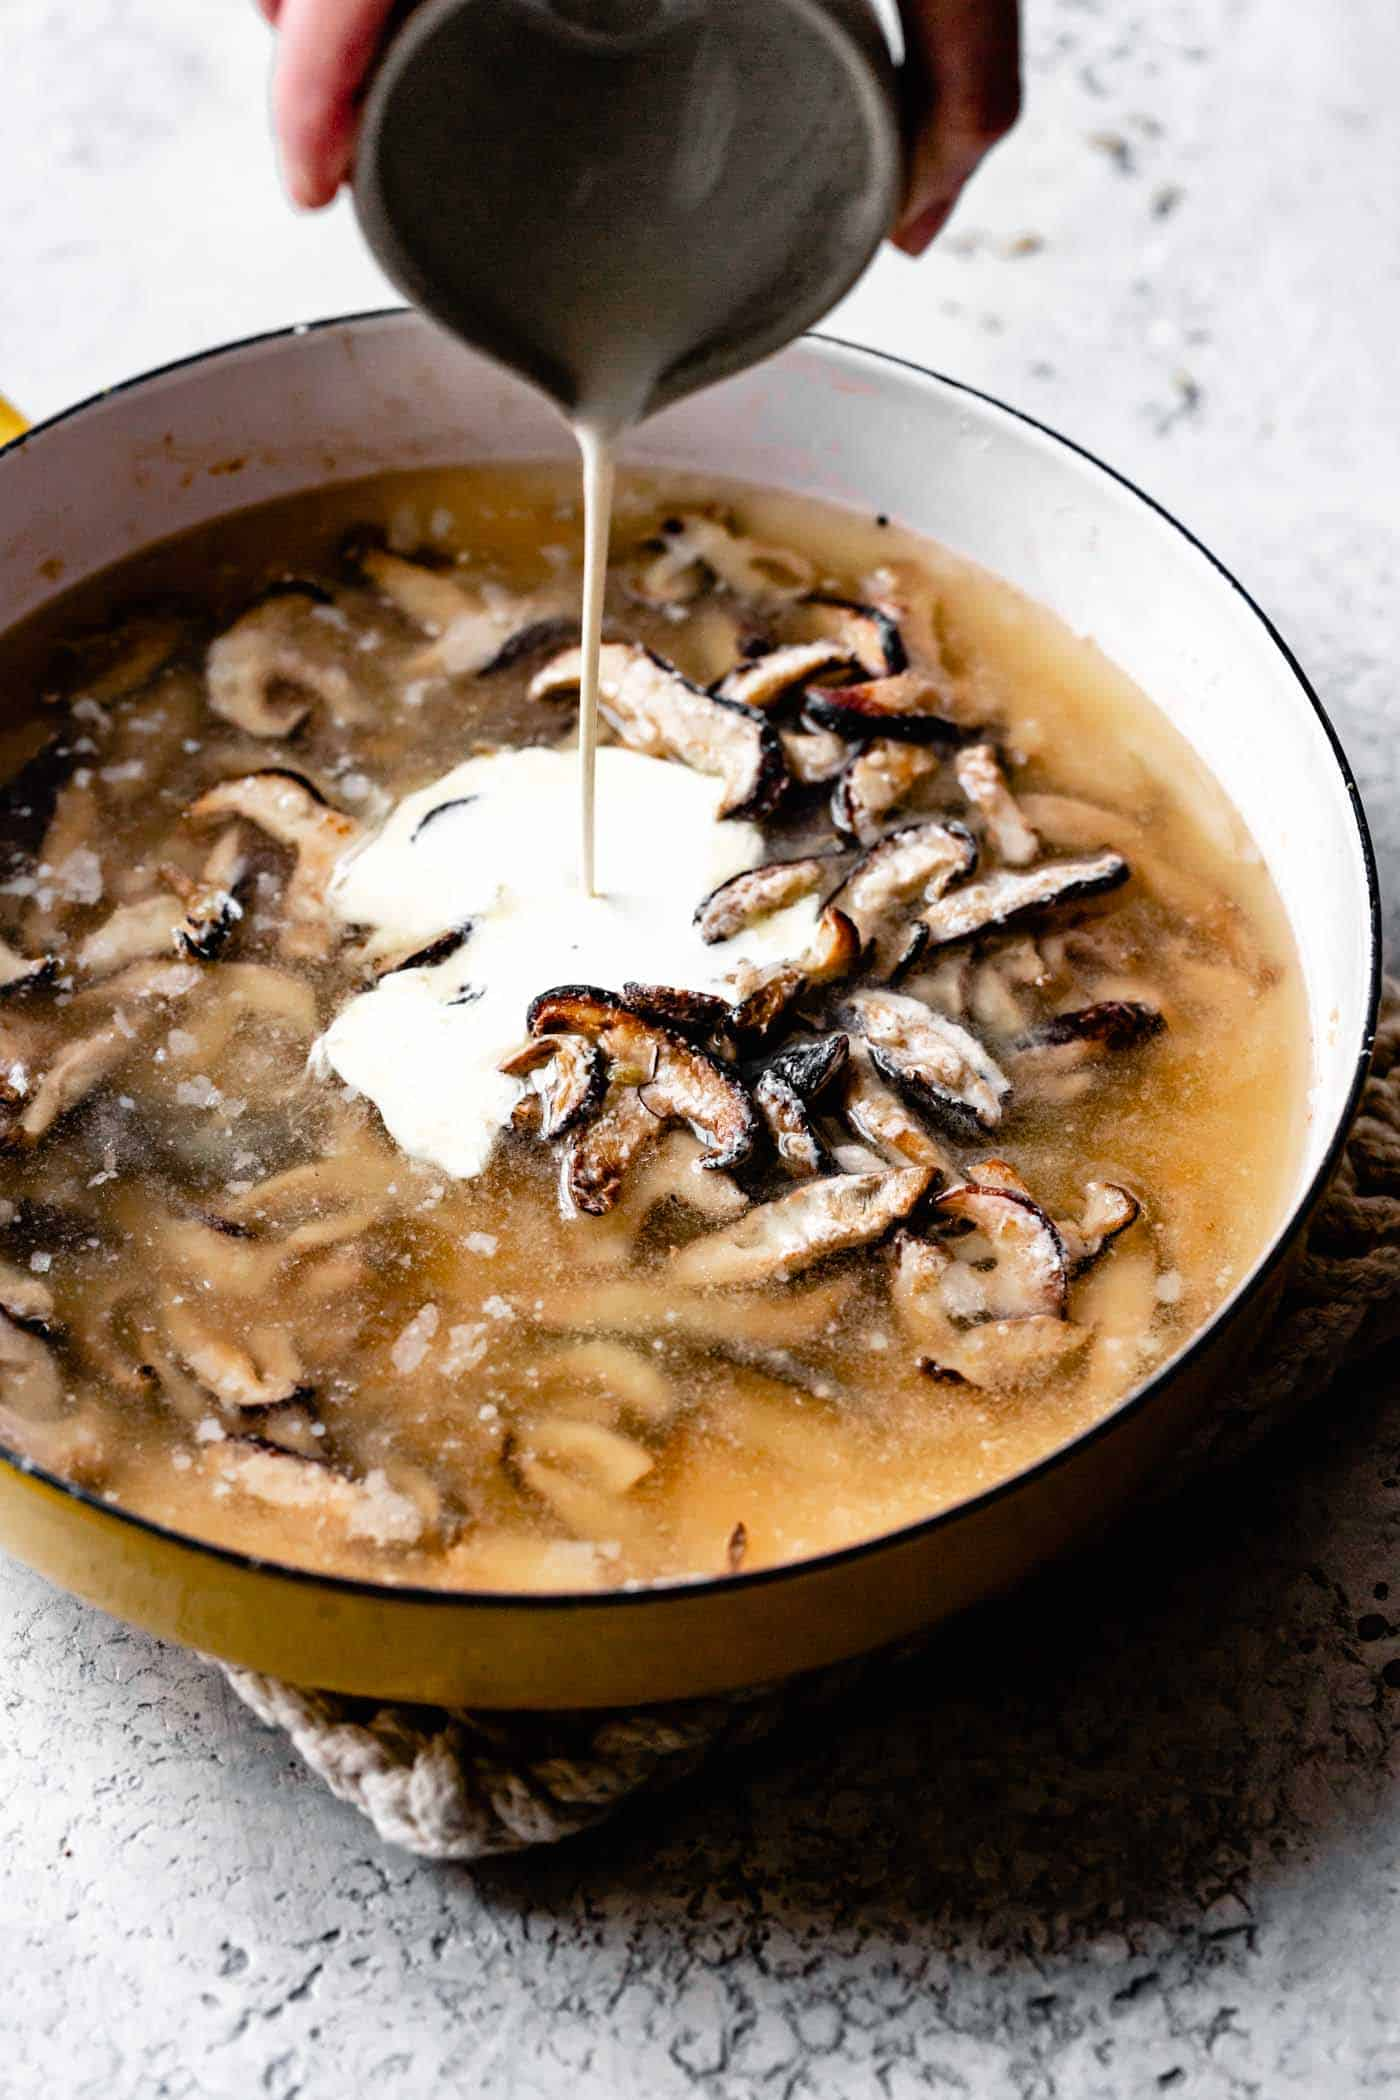 Gluten-free homemade mushroom gravy recipe: adding cream to the mushrooms and stock